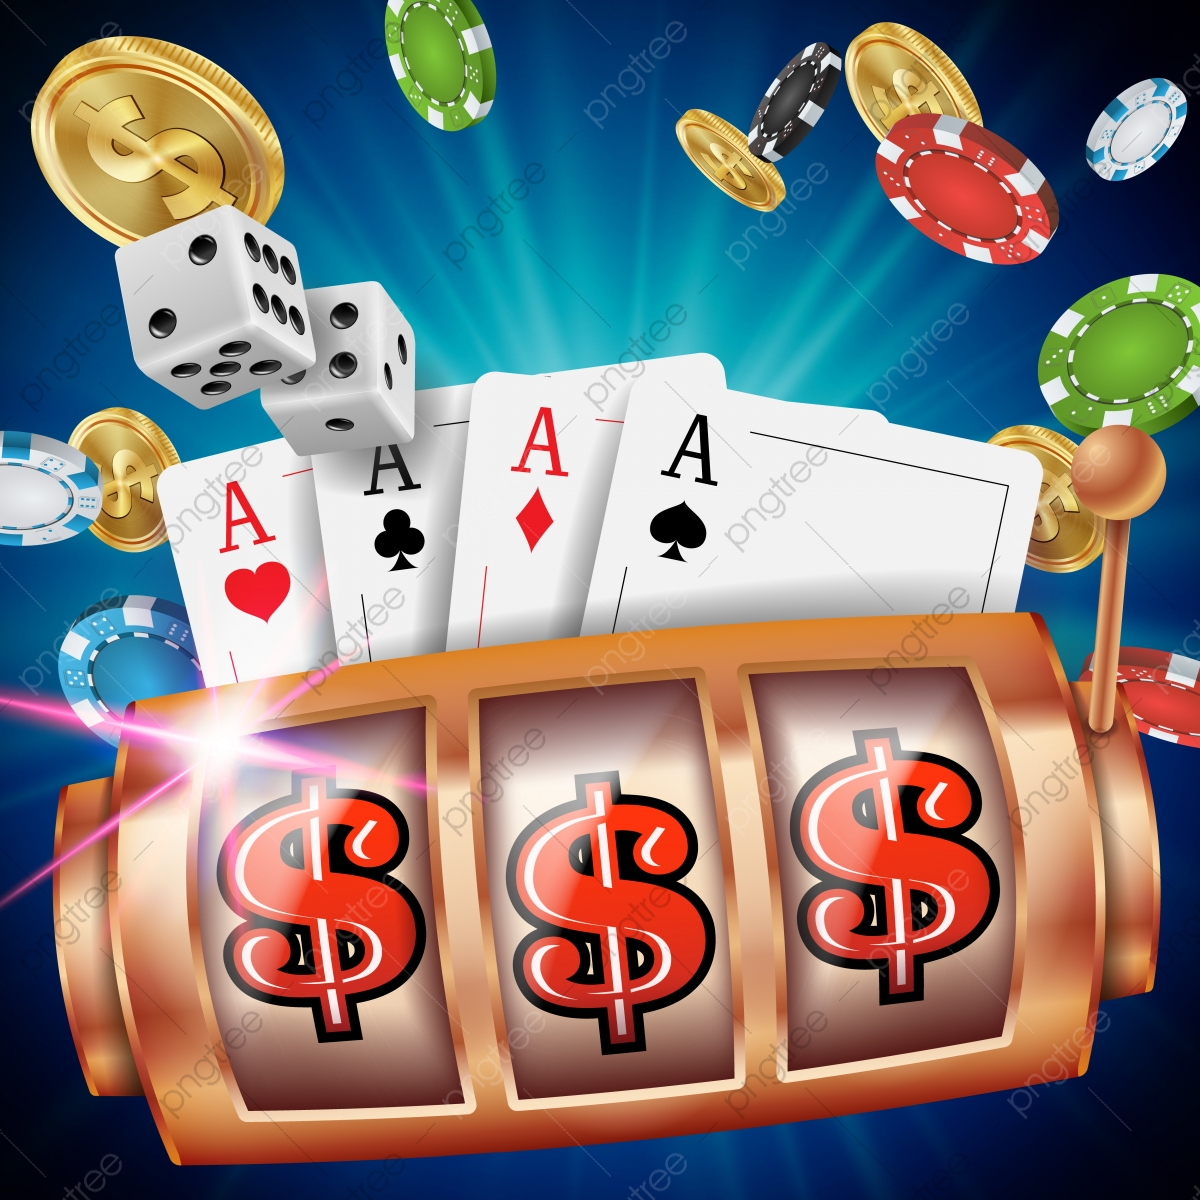 Casino Slot Machine Banner Vector Spin Wheel Brochure Casino Concept With  Slot Machine Illustration, Picture, Red, Scene PNG and Vector with  Transparent Background for Free Download